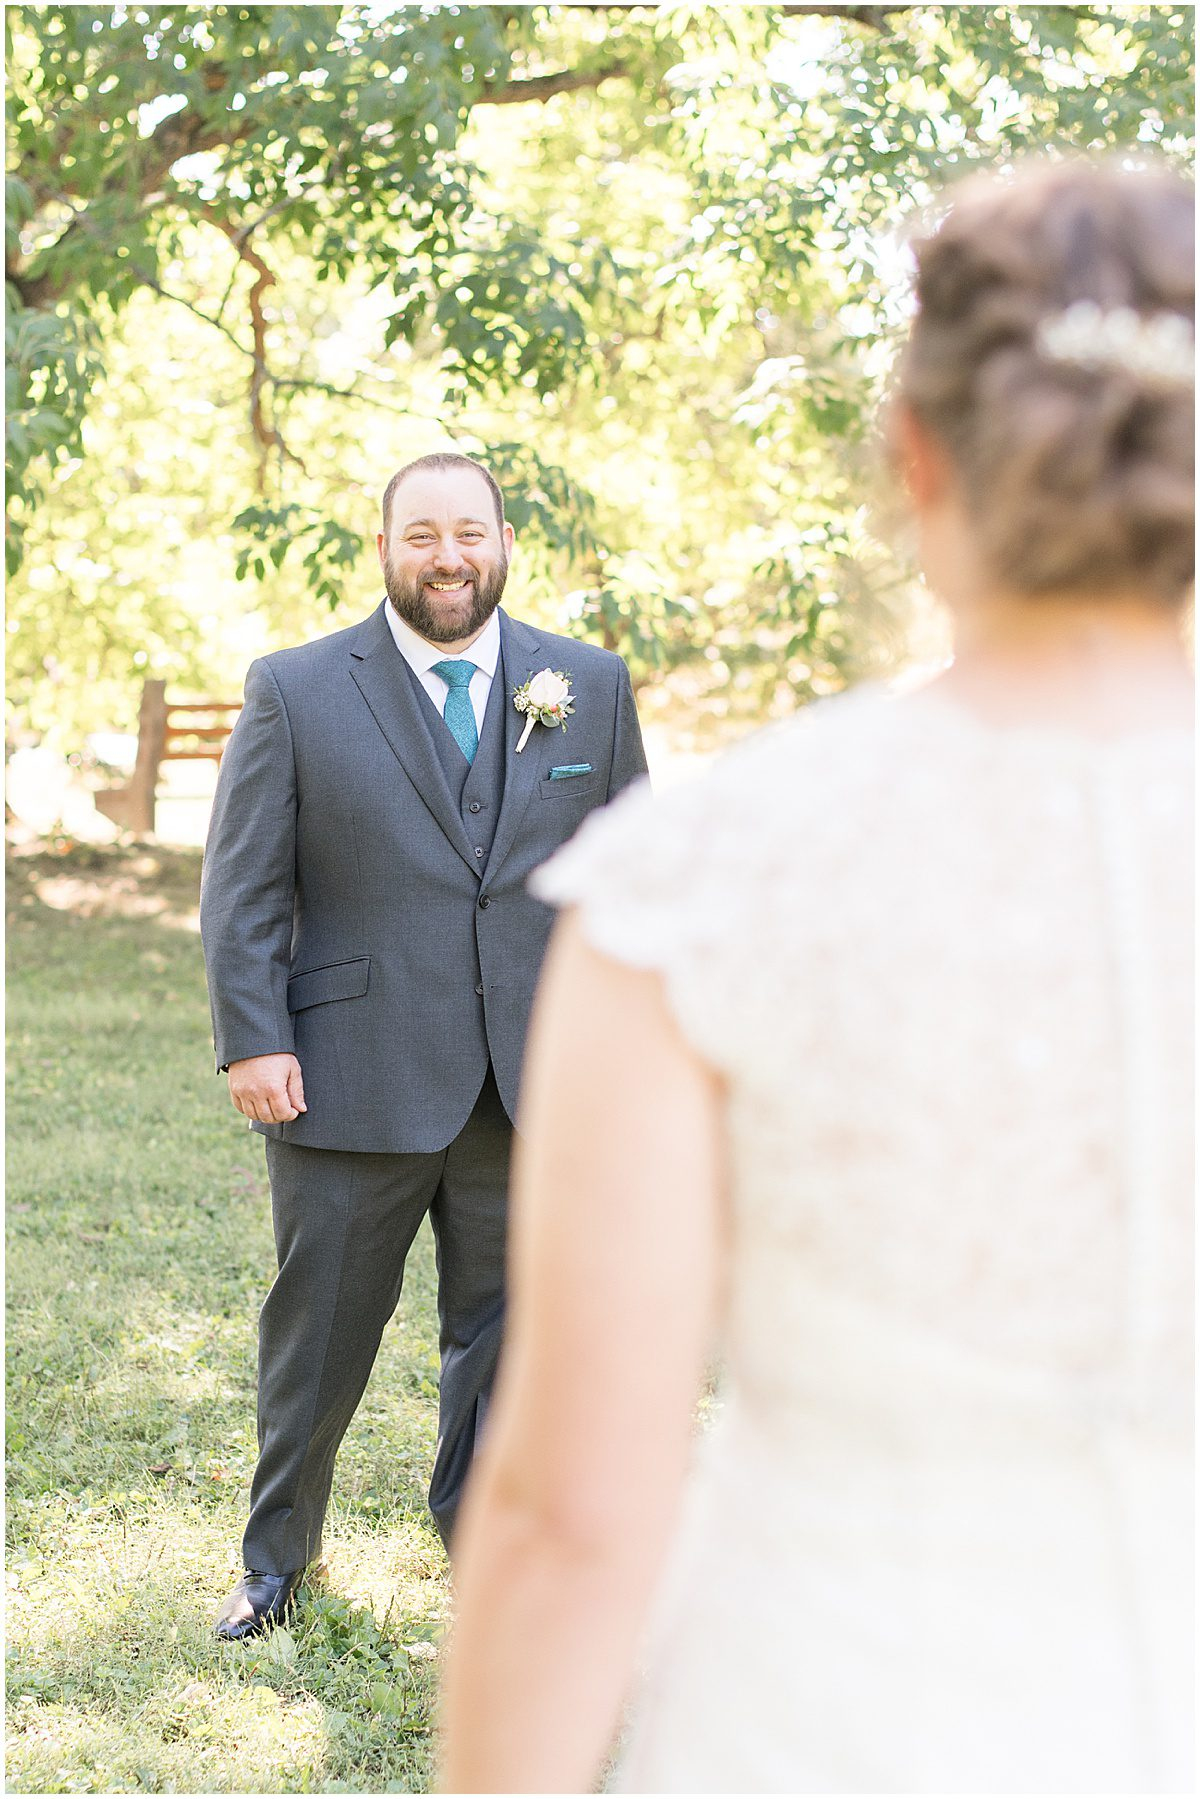 First look before intimate wedding at Holliday Park in Indianapolis by Victoria Rayburn Photography